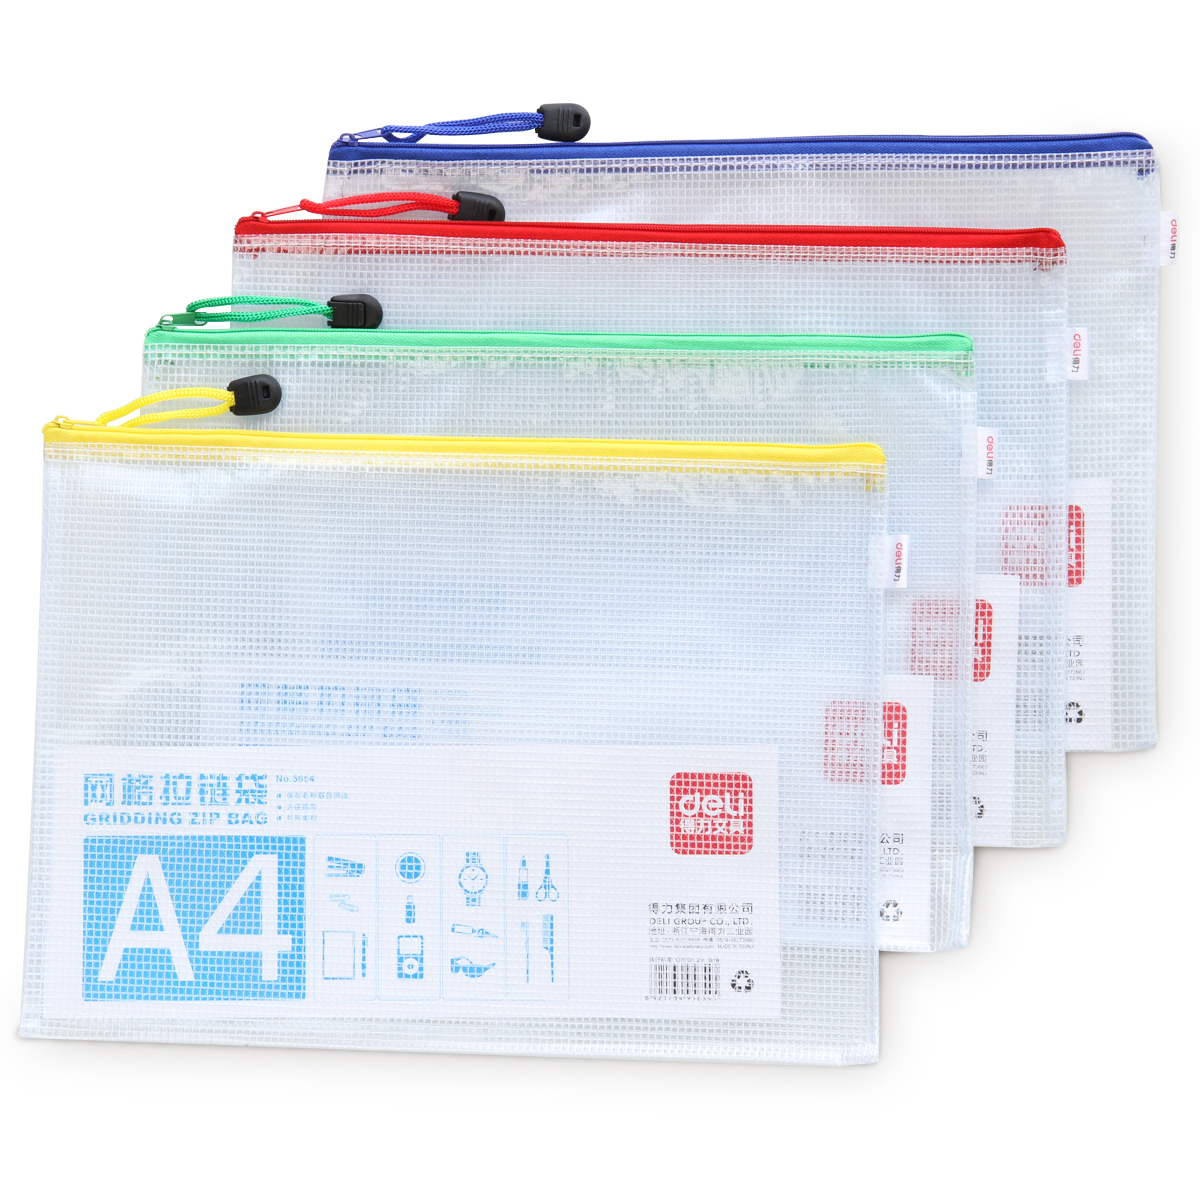 Deli zipper bag a4/a5/a5.5/b5 paper bags transparent plastic bag envelope edge bags mesh bags